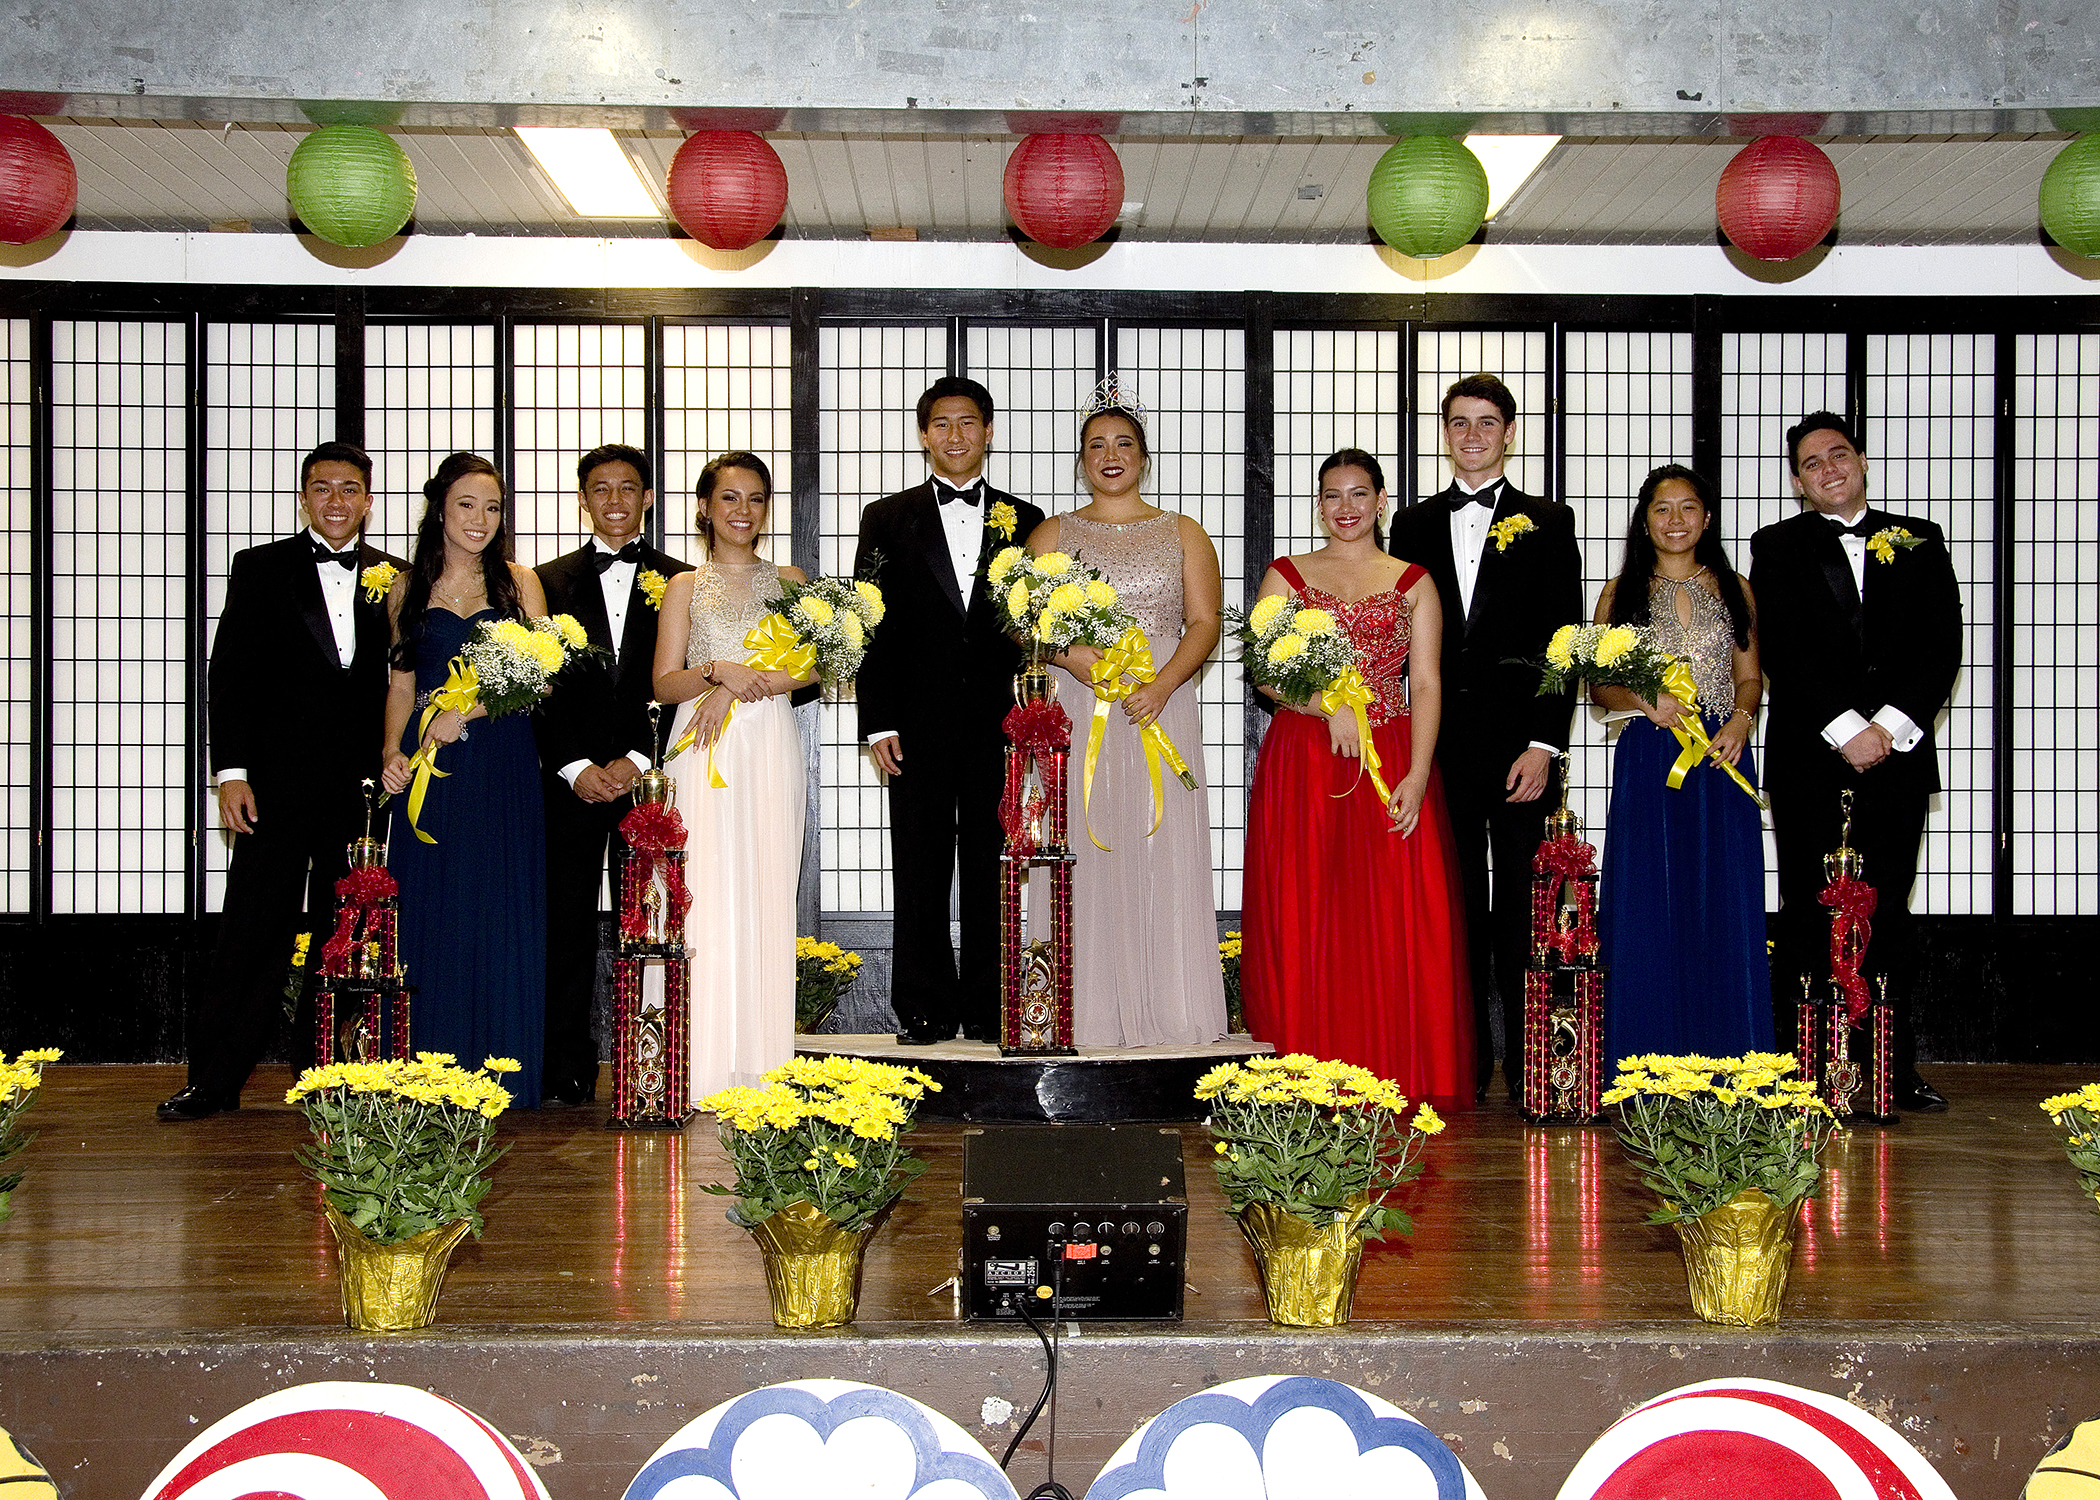 The 2017 Chrysanthemum Festival Court and their escorts: Princess Kristi Echiverri and Kawika Fernandez, Princess Jaelynn Nobriga and Logan Cabanilla-Aricayos, Queen Paige Maki Nagahama and Kai Iinuma Nakaaki, Princess Makaylen Tadeo and John Williamson, and Princess Sokha Furumoto and Caleb Perreira. (Photo by Nagamine Photo Studio)